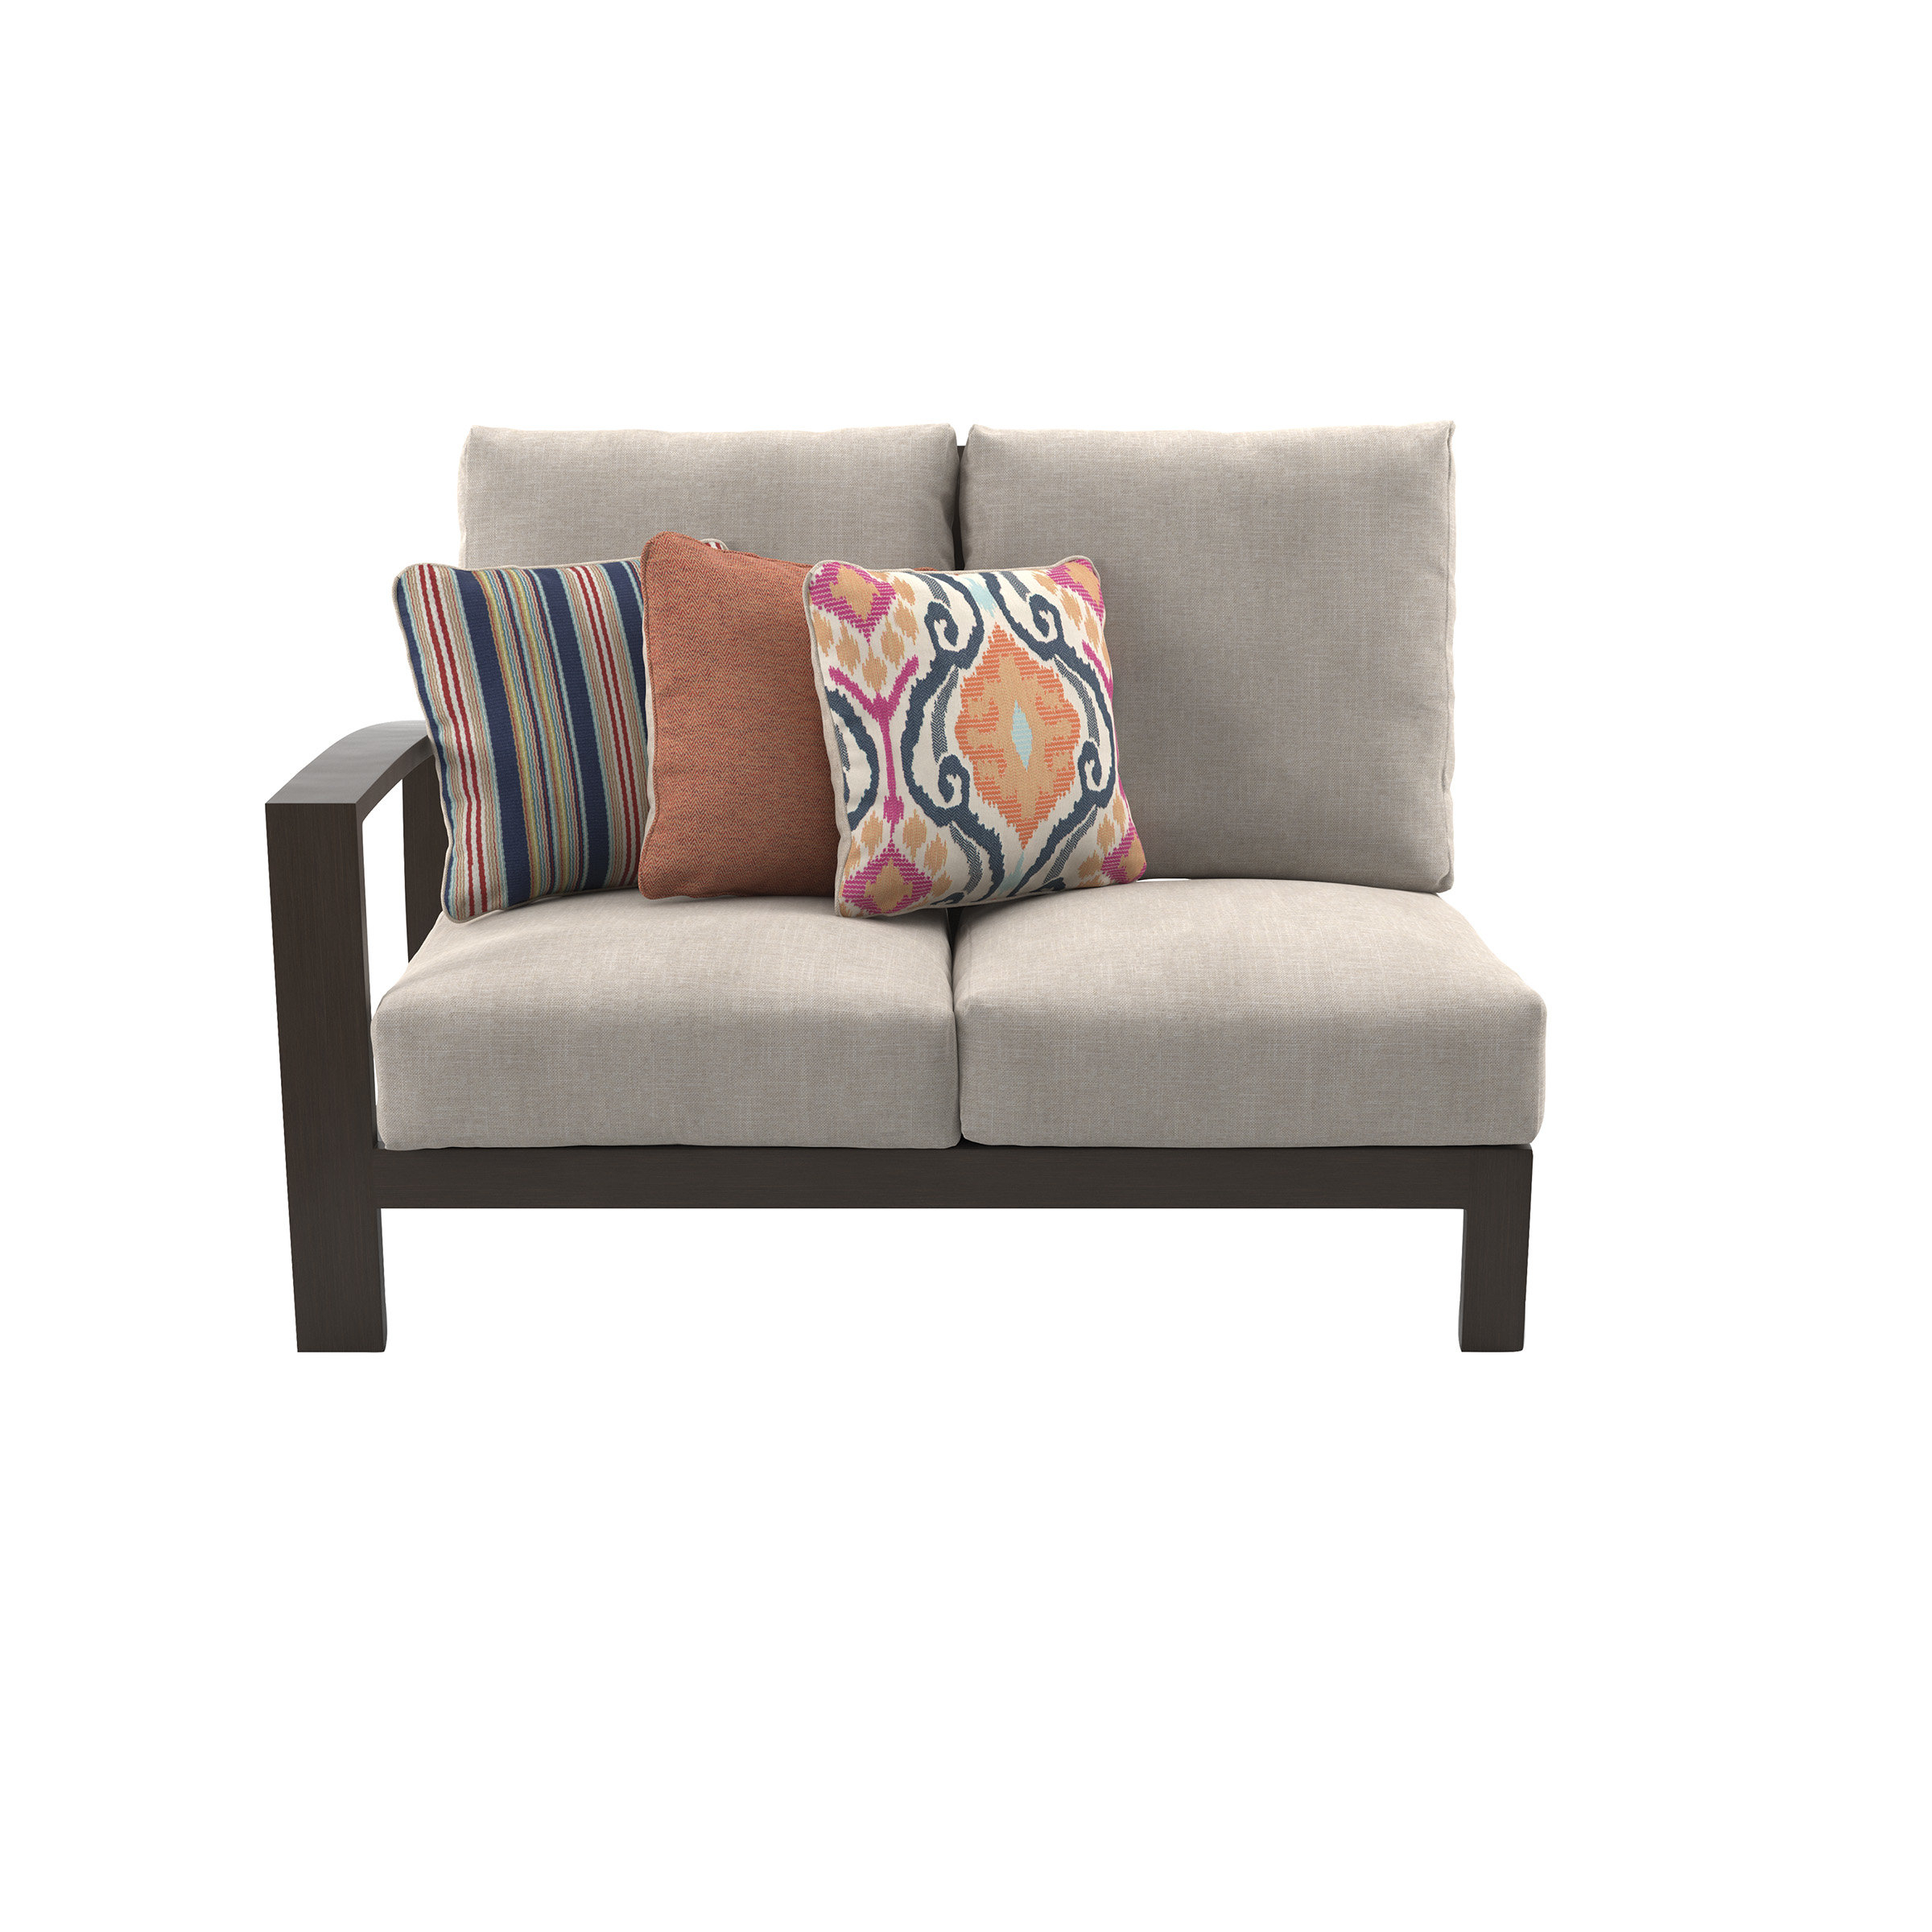 Widely Used Jay Loveseat With Cushions Inside Clifford Loveseats With Cushion (View 9 of 20)